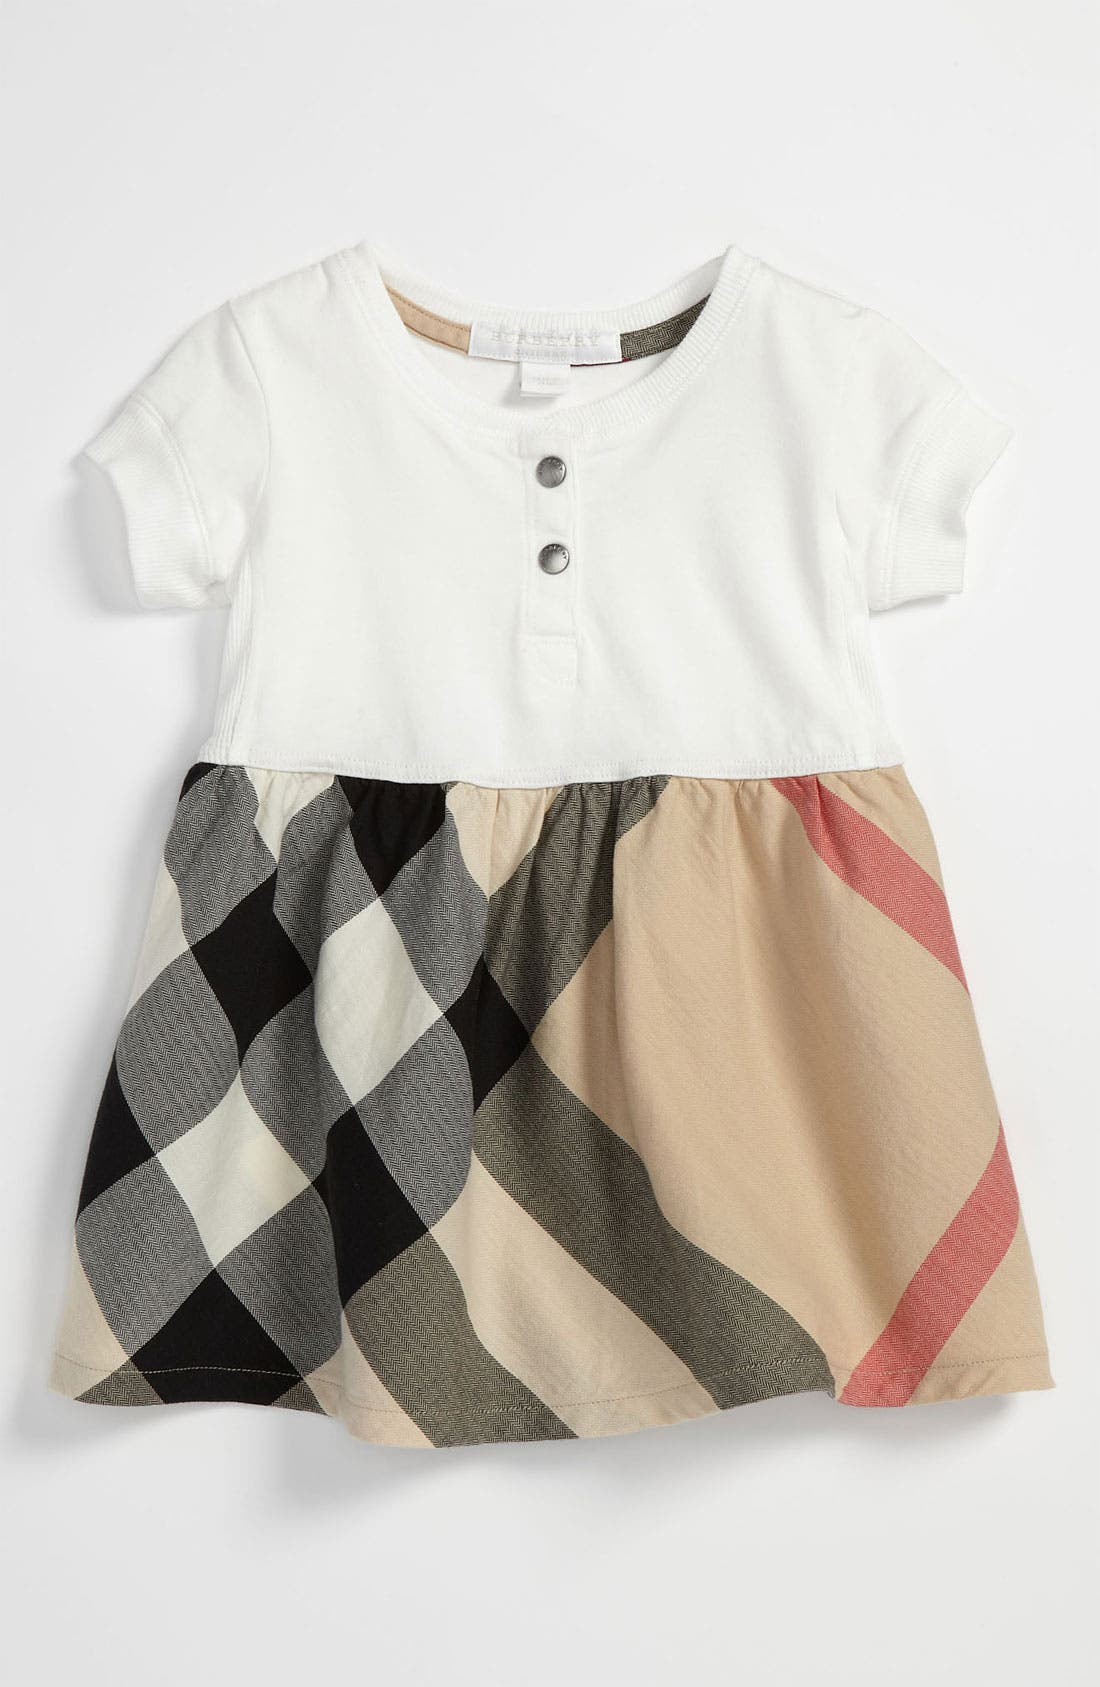 Main Image - Burberry Check Print Dress (Baby)